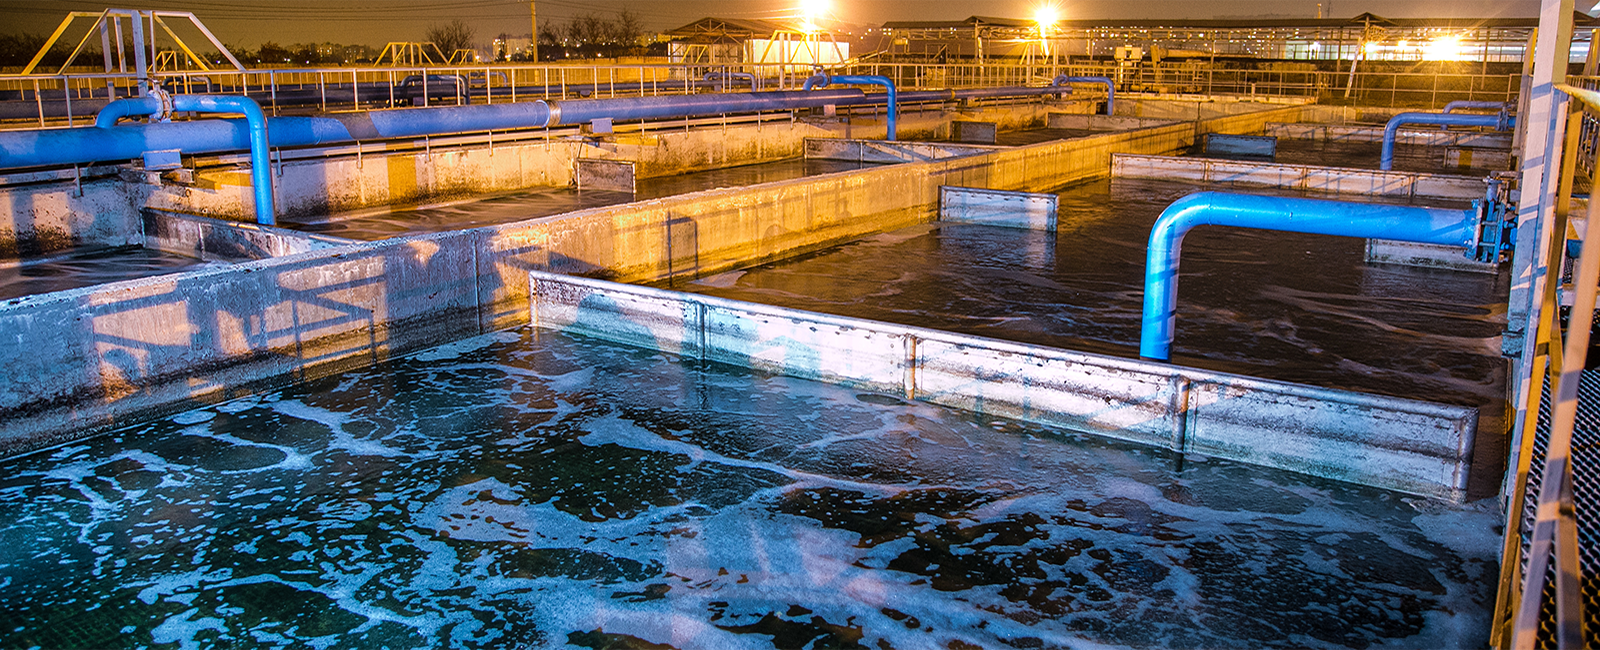 Night Time Clarifiers